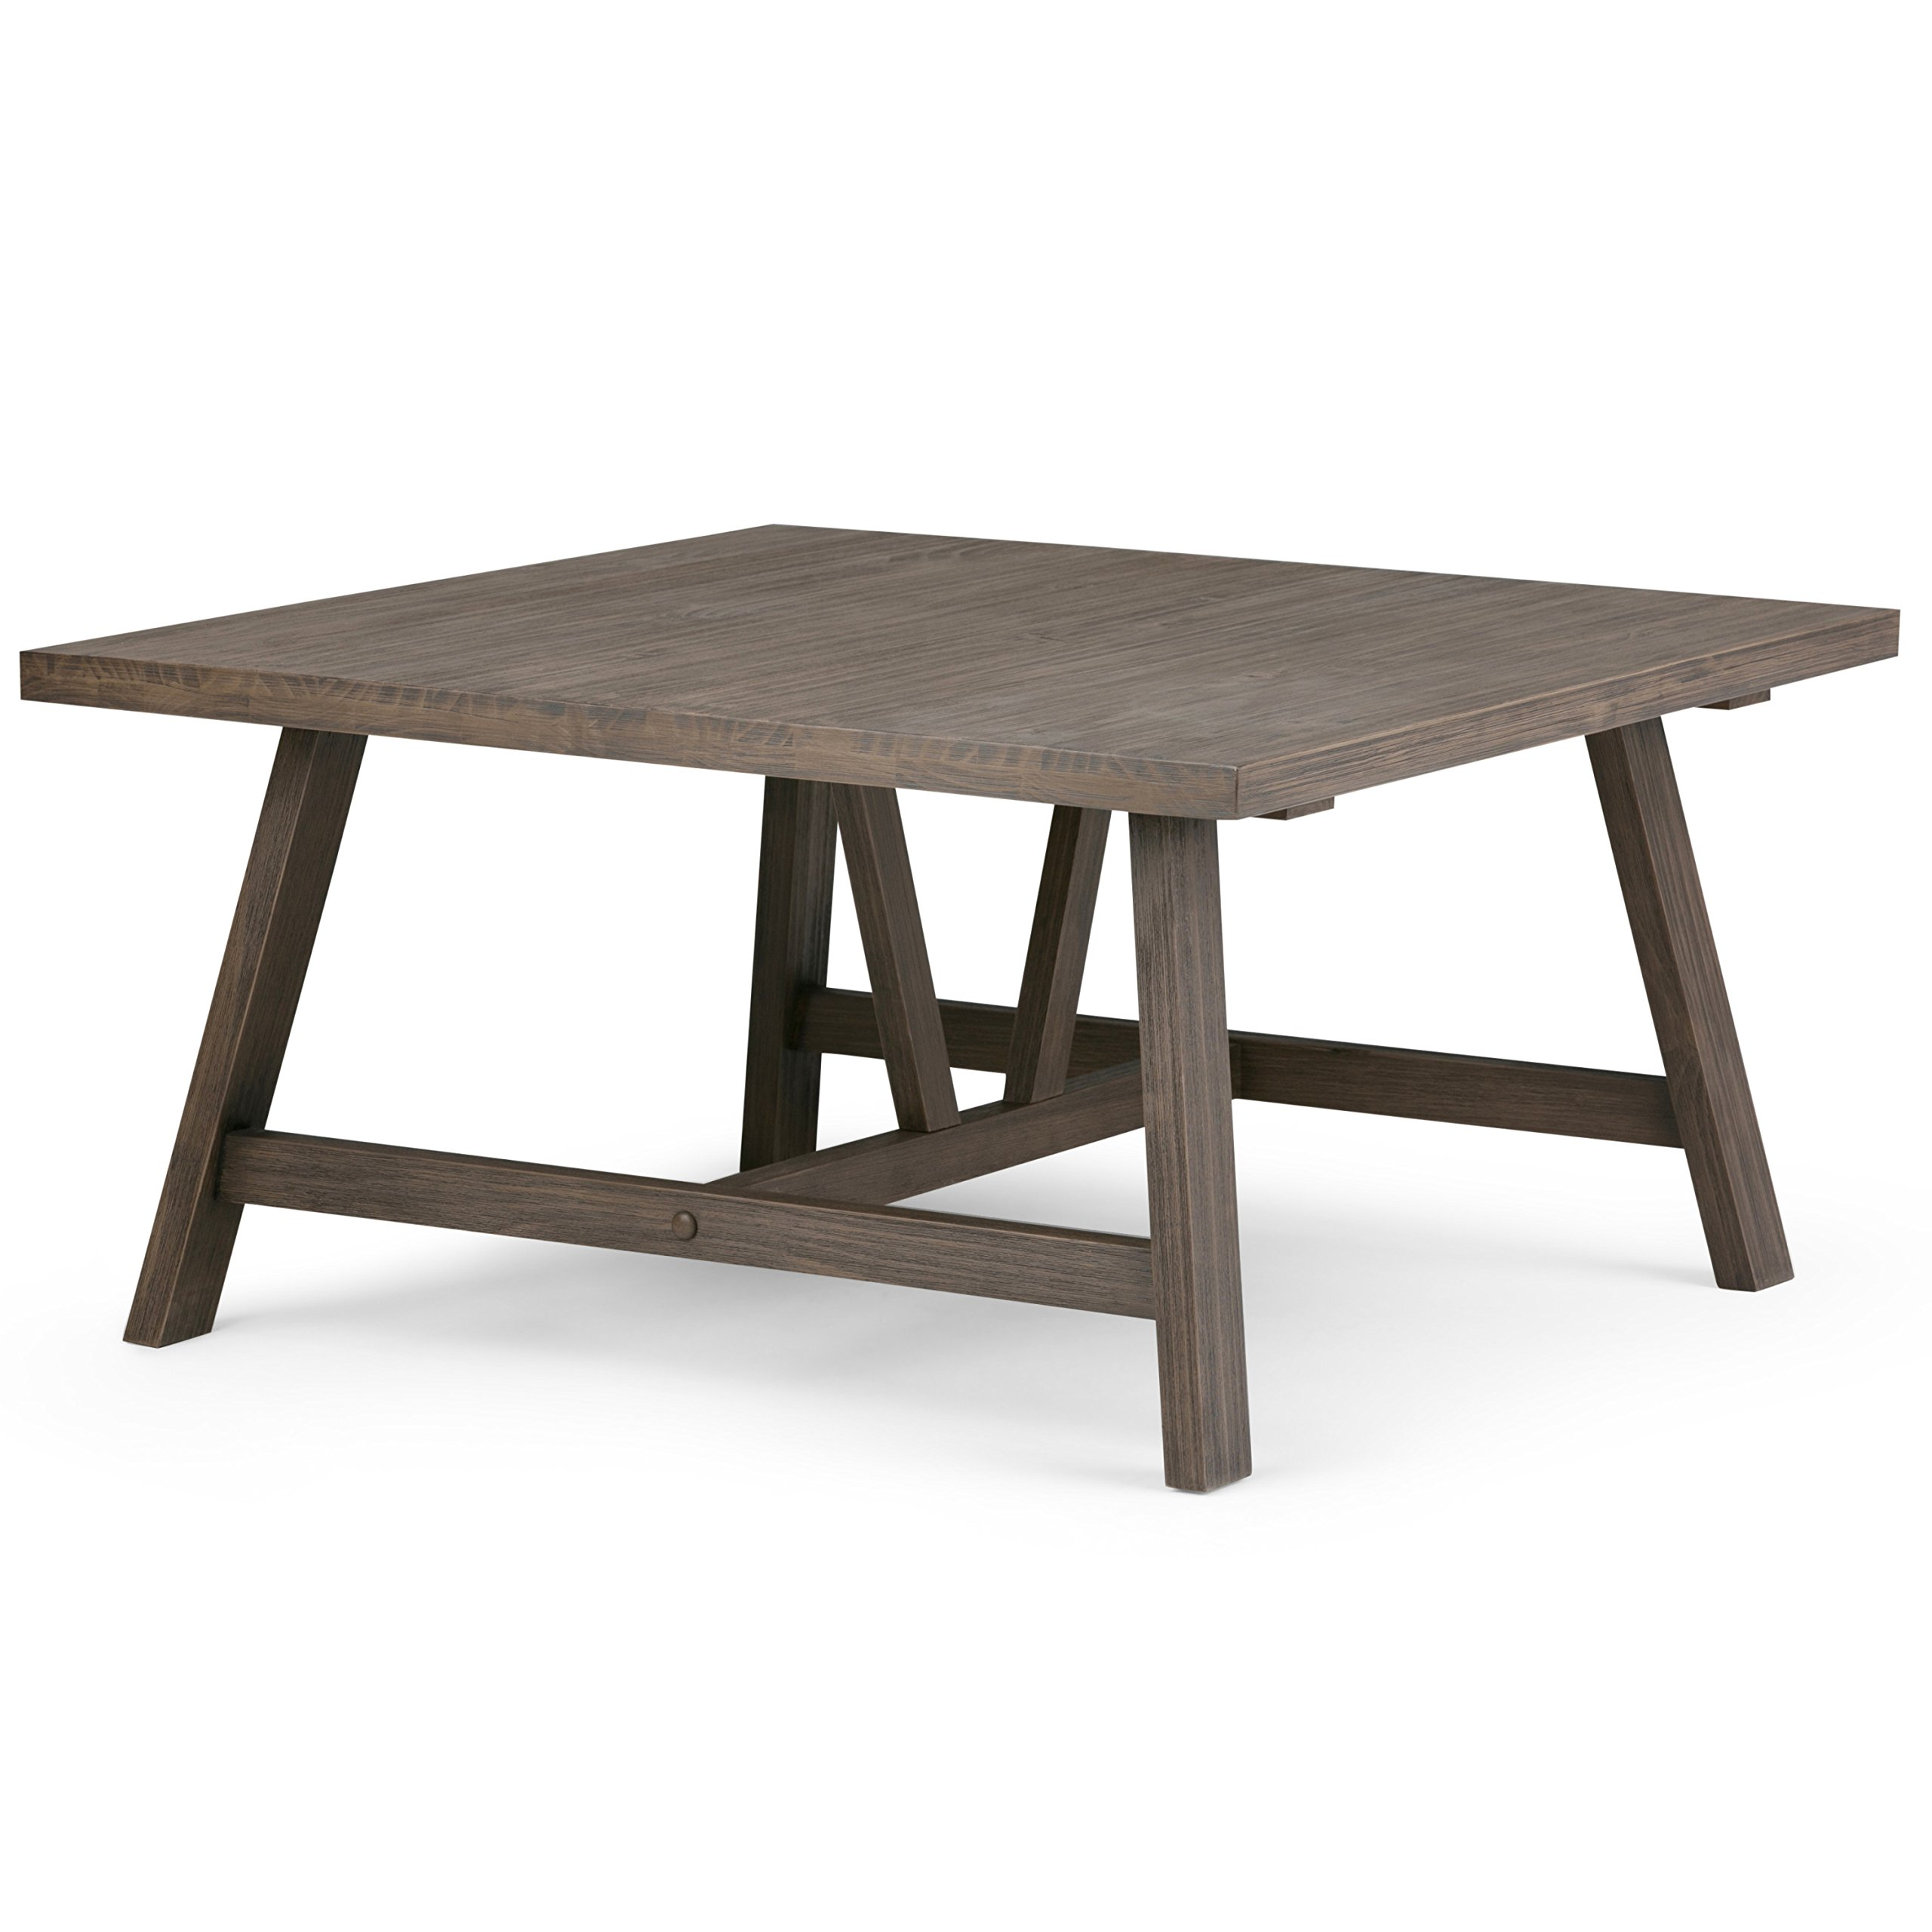 Simpli Home 3AXCDLN-02 Dylan Solid Wood 36 inch Wide Square Modern Industrial Coffee Table in Driftwood by Simpli Home